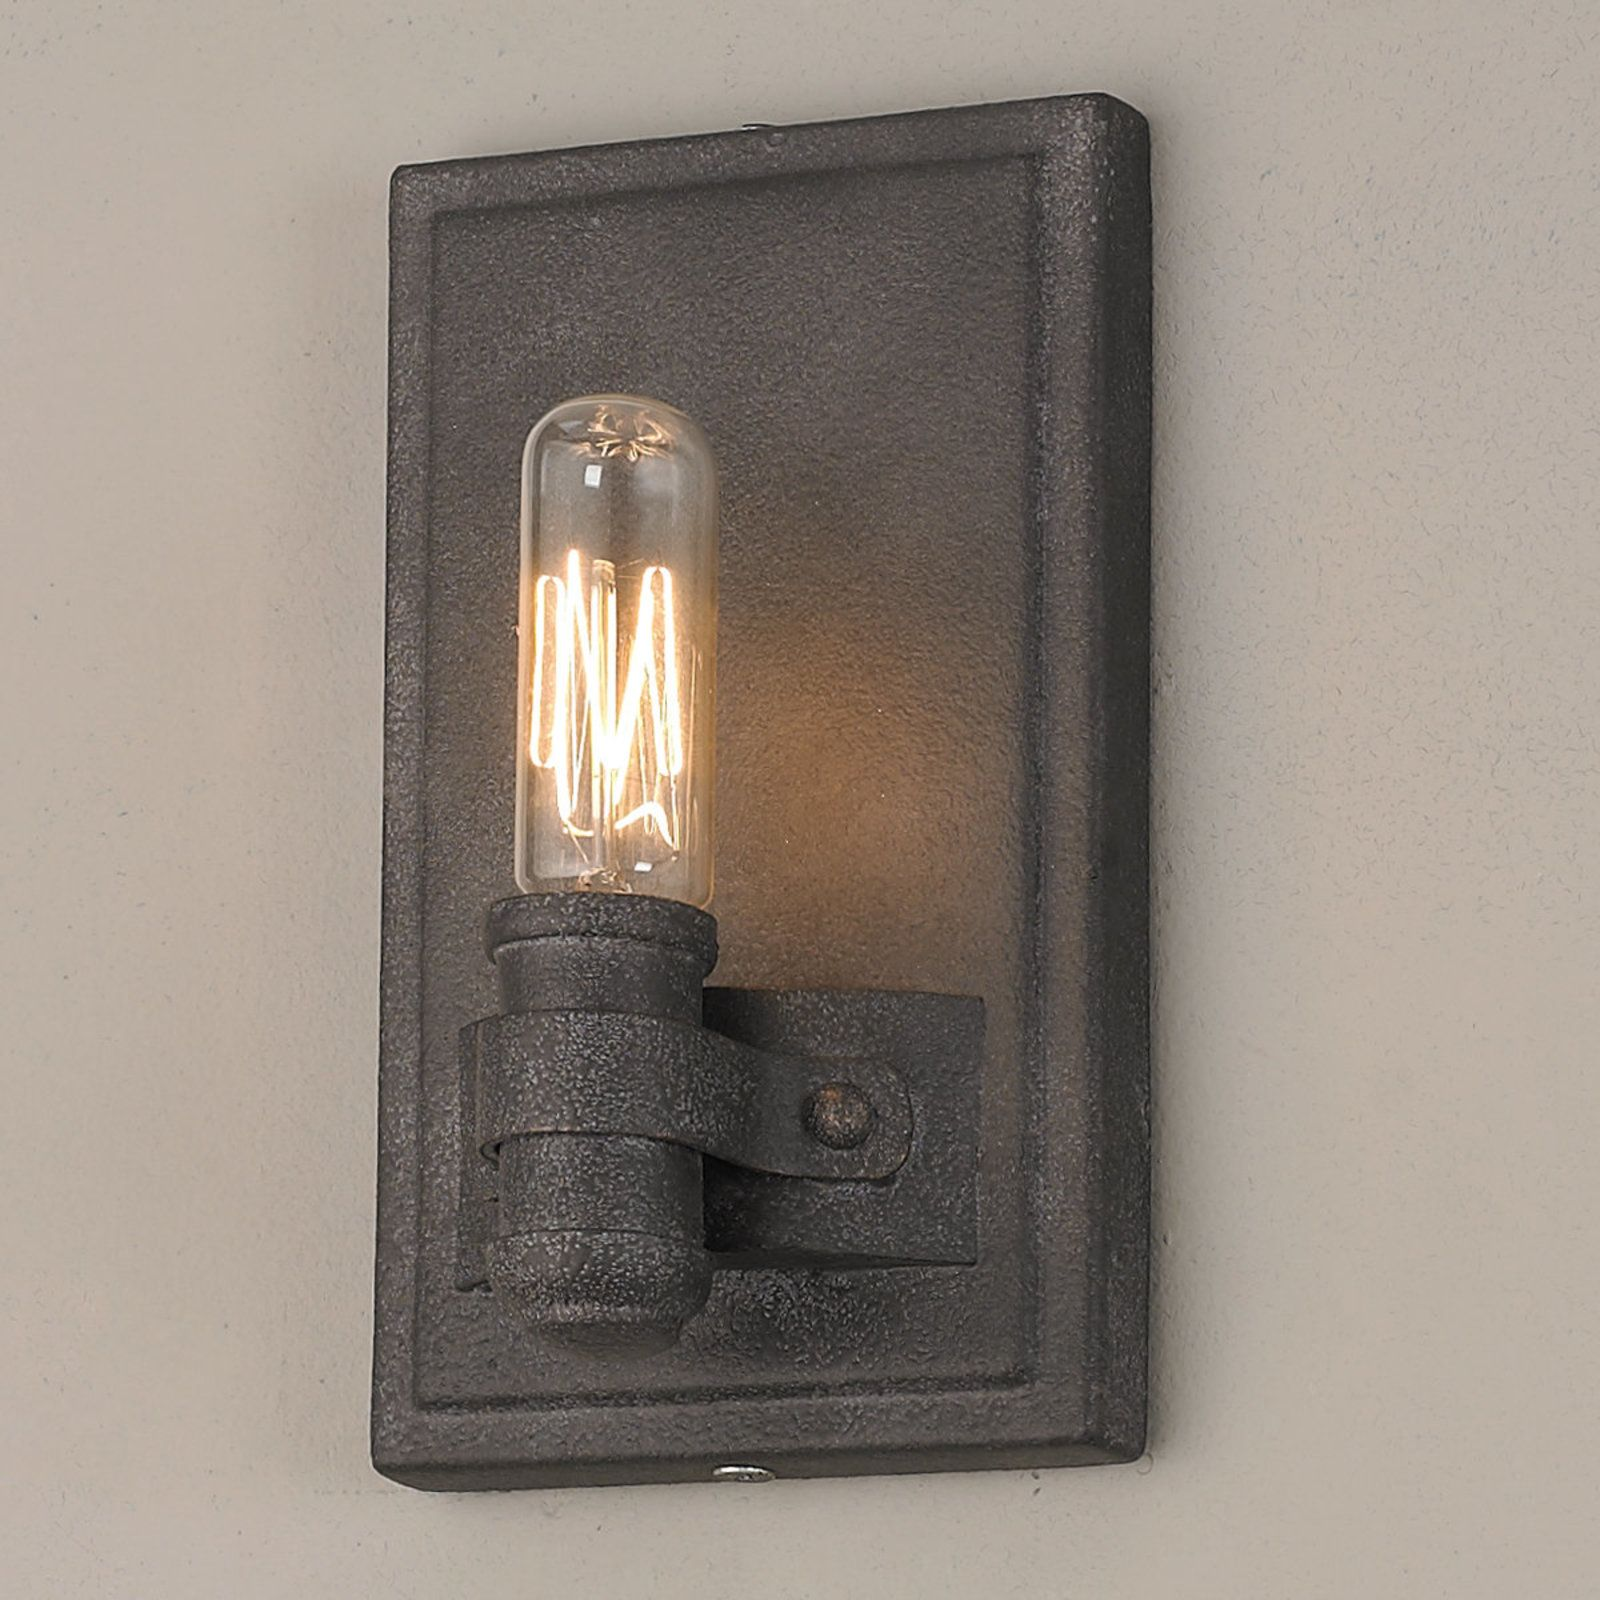 yamagiwa simple lighting sconce kovacs robie of george sconces battery awesome msk wall pinterest